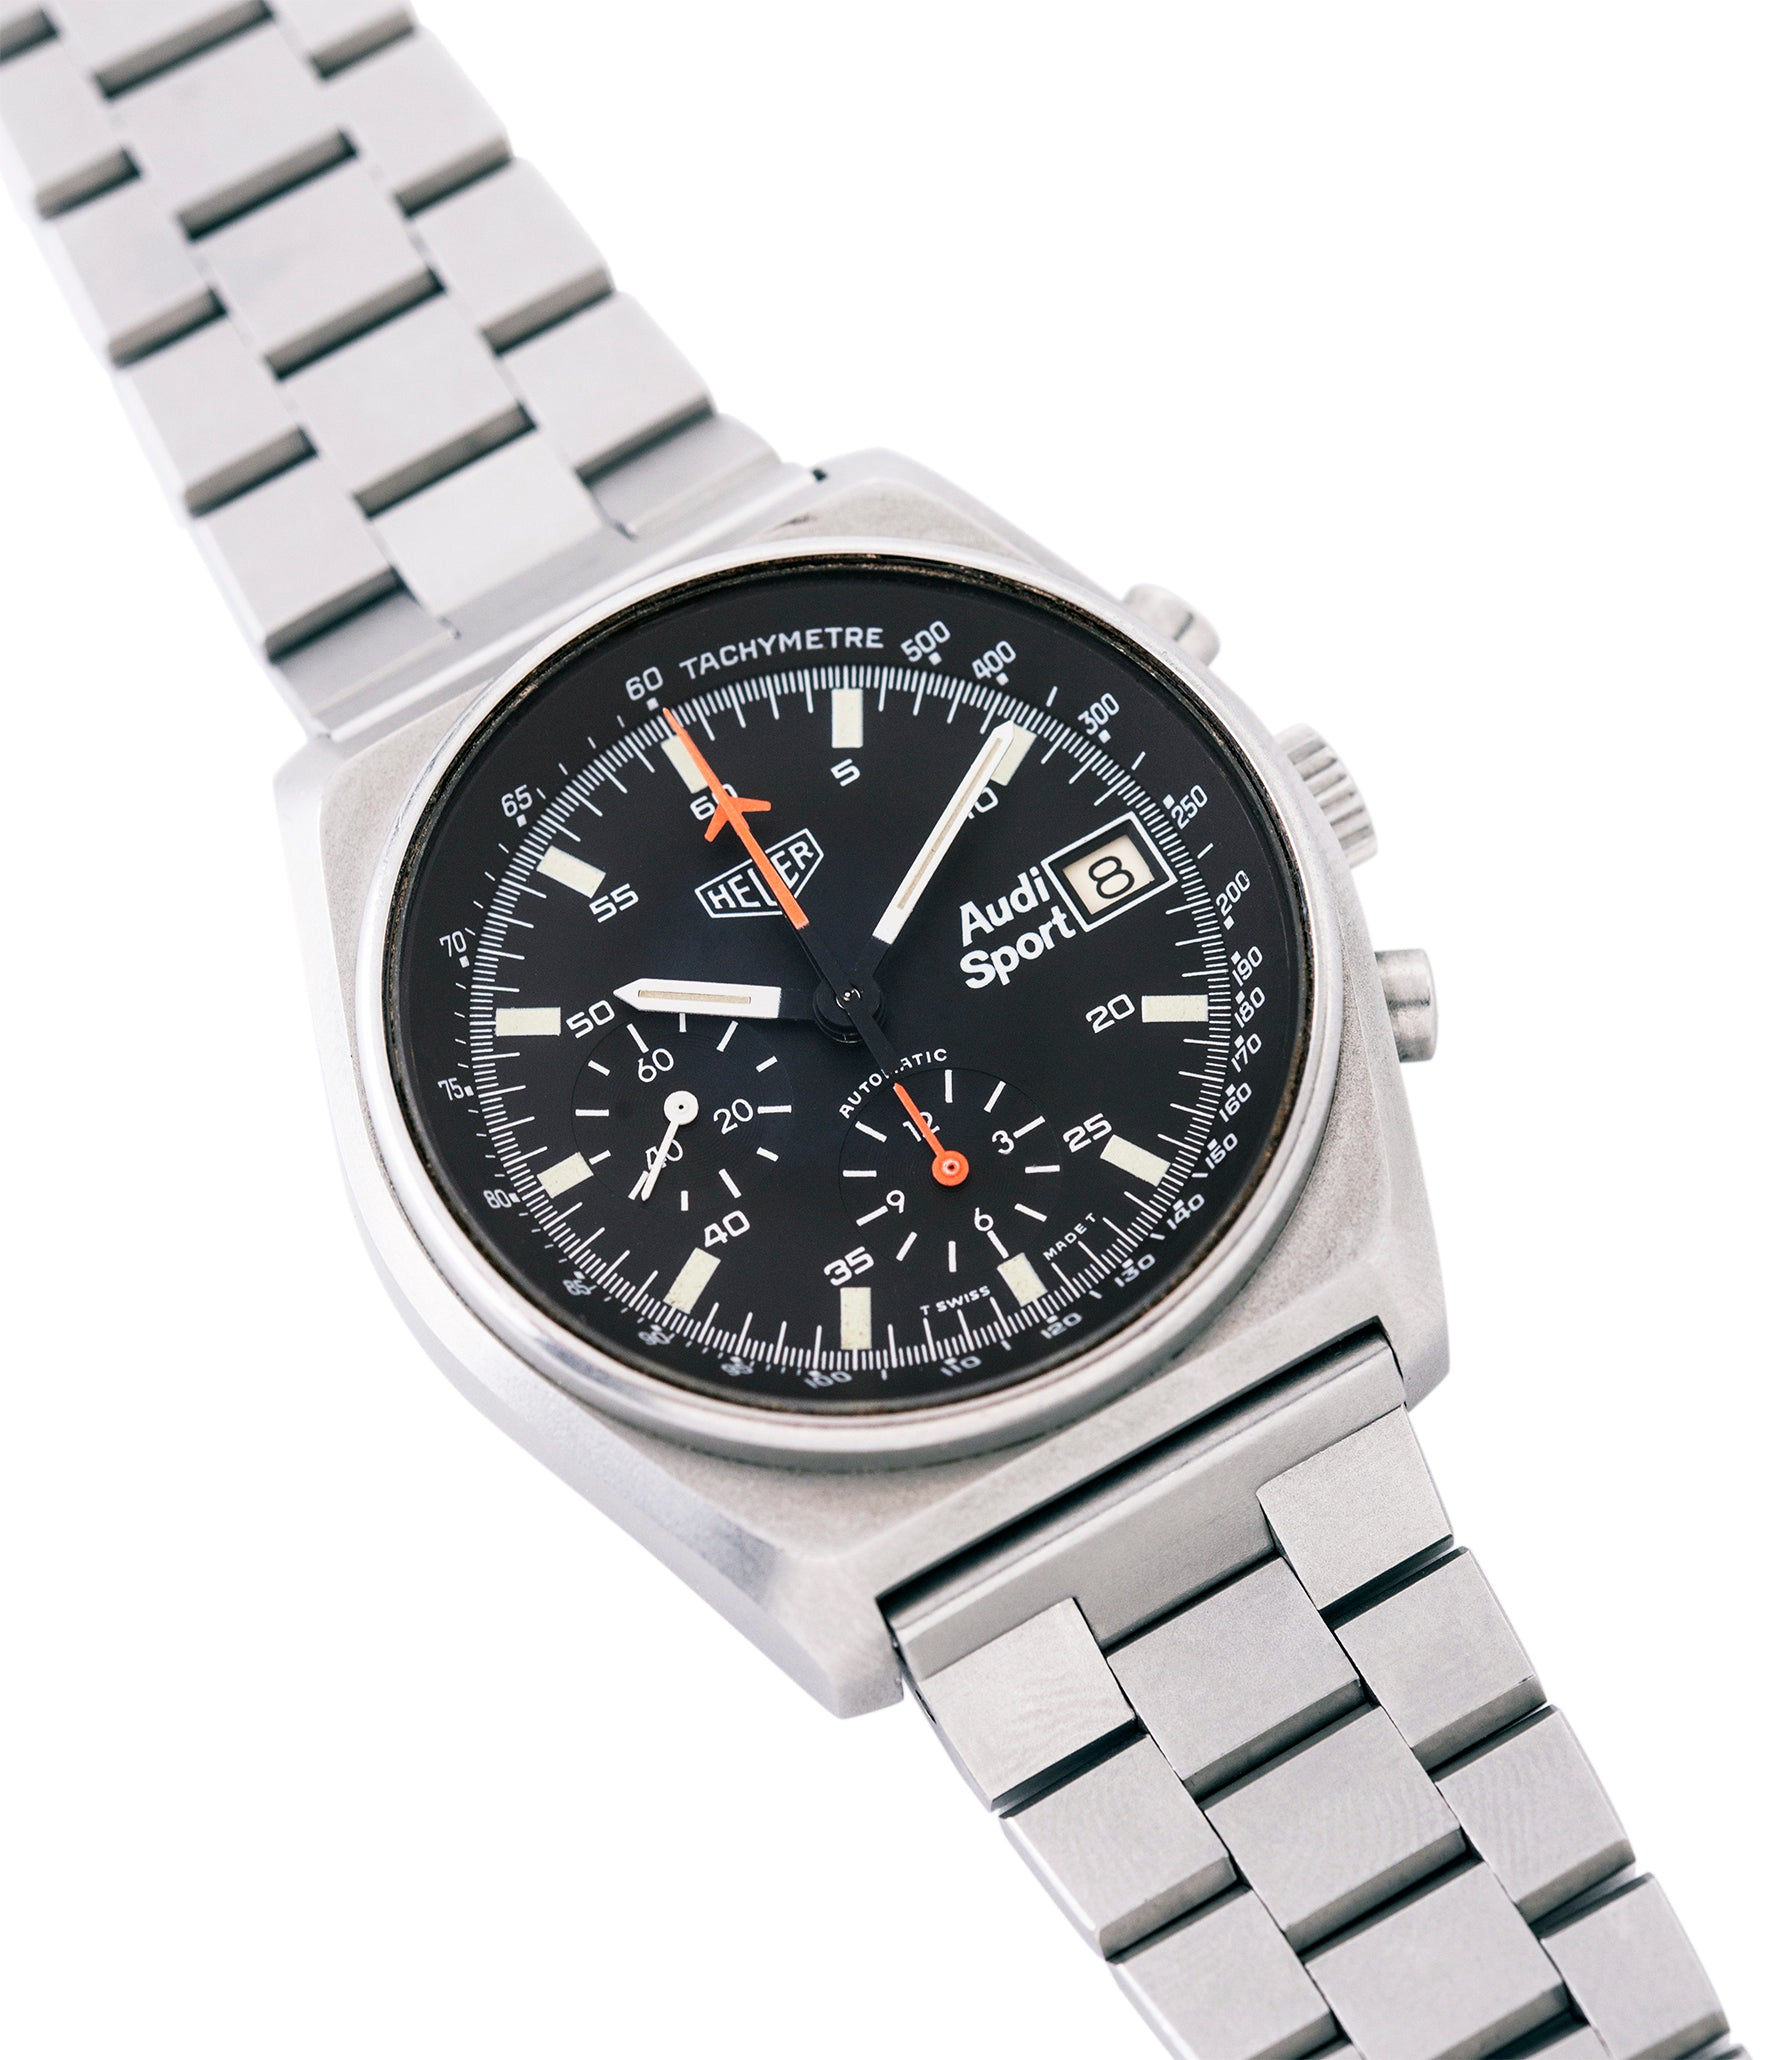 buying Heuer Sport Audi 510.533 vintage steel chronograph watch for sale online at A Collected Man London UK specialist of rare vintage watches